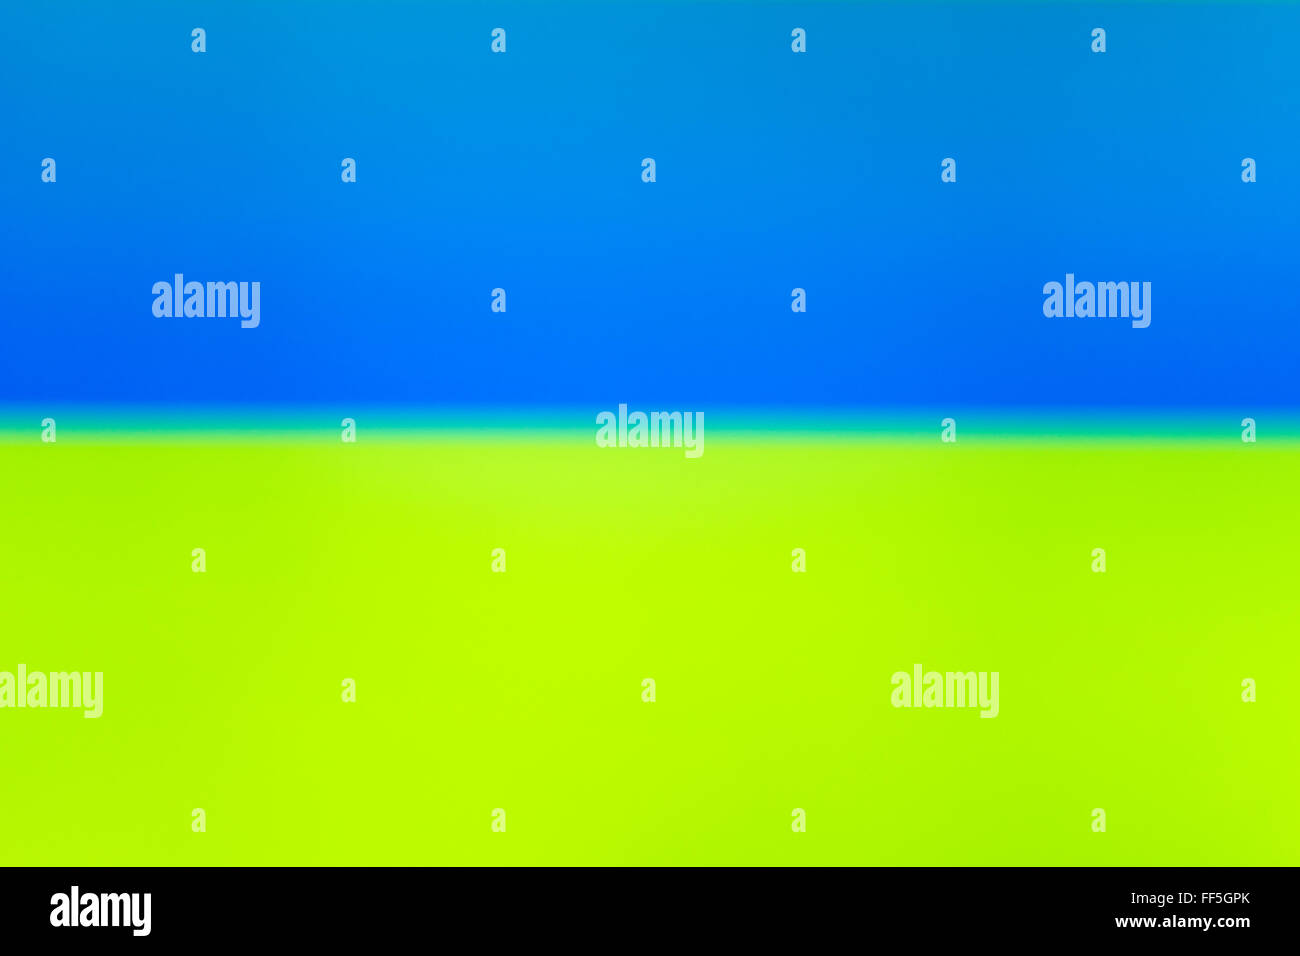 Blue yellow interlaced tv screen static noise, abstraction